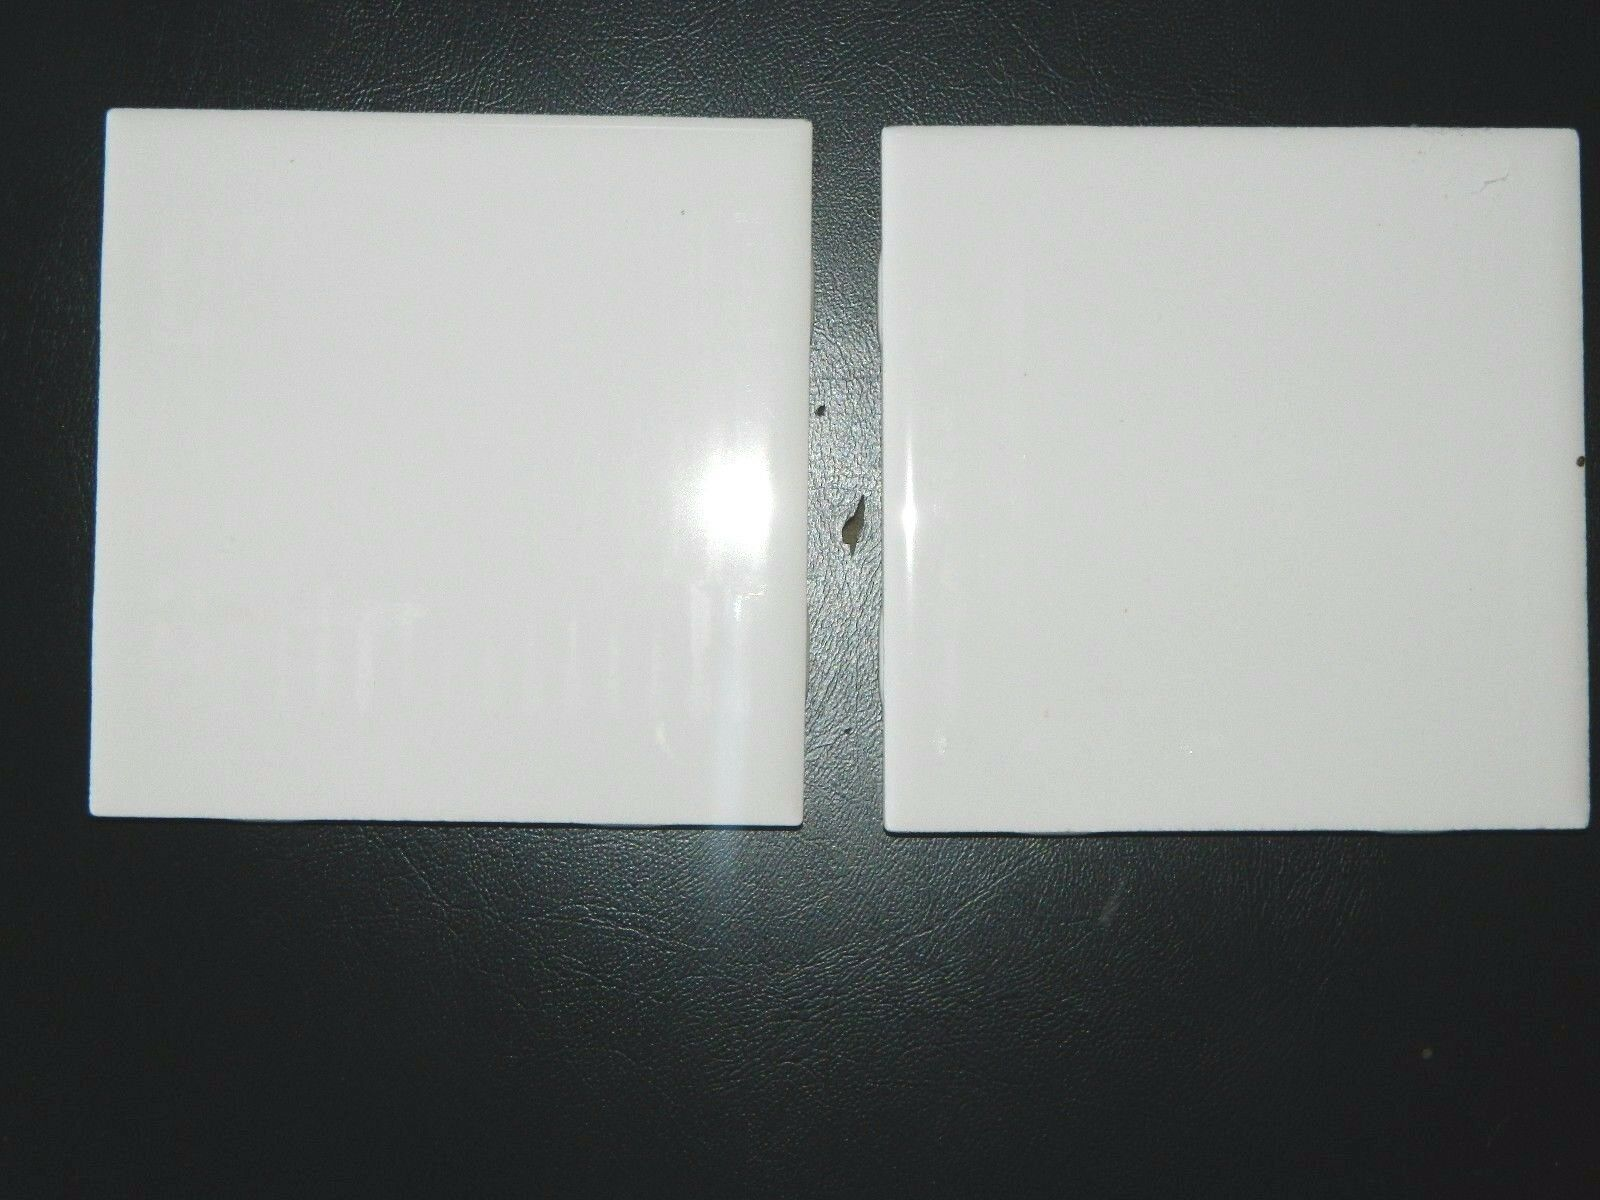 LOT OF Pieces American Olean Ceramic Glazed Wall Tile Gloss - American olean 4x4 wall tile